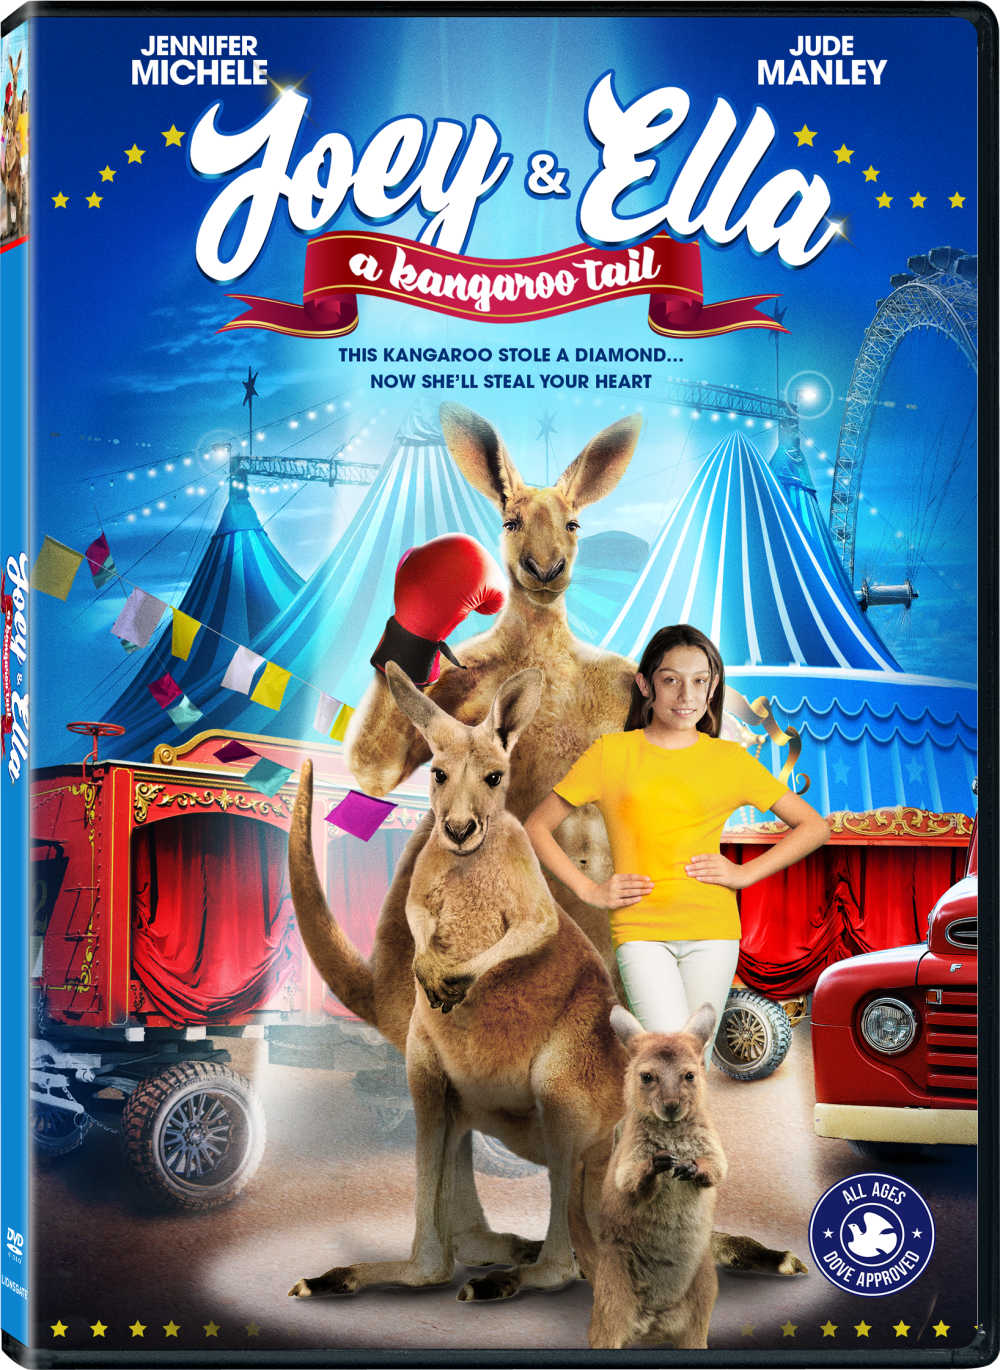 Watch the new Joey and Ella DVD movie, when you want an exciting and fun family friendly adventure with a whole lot of heart.